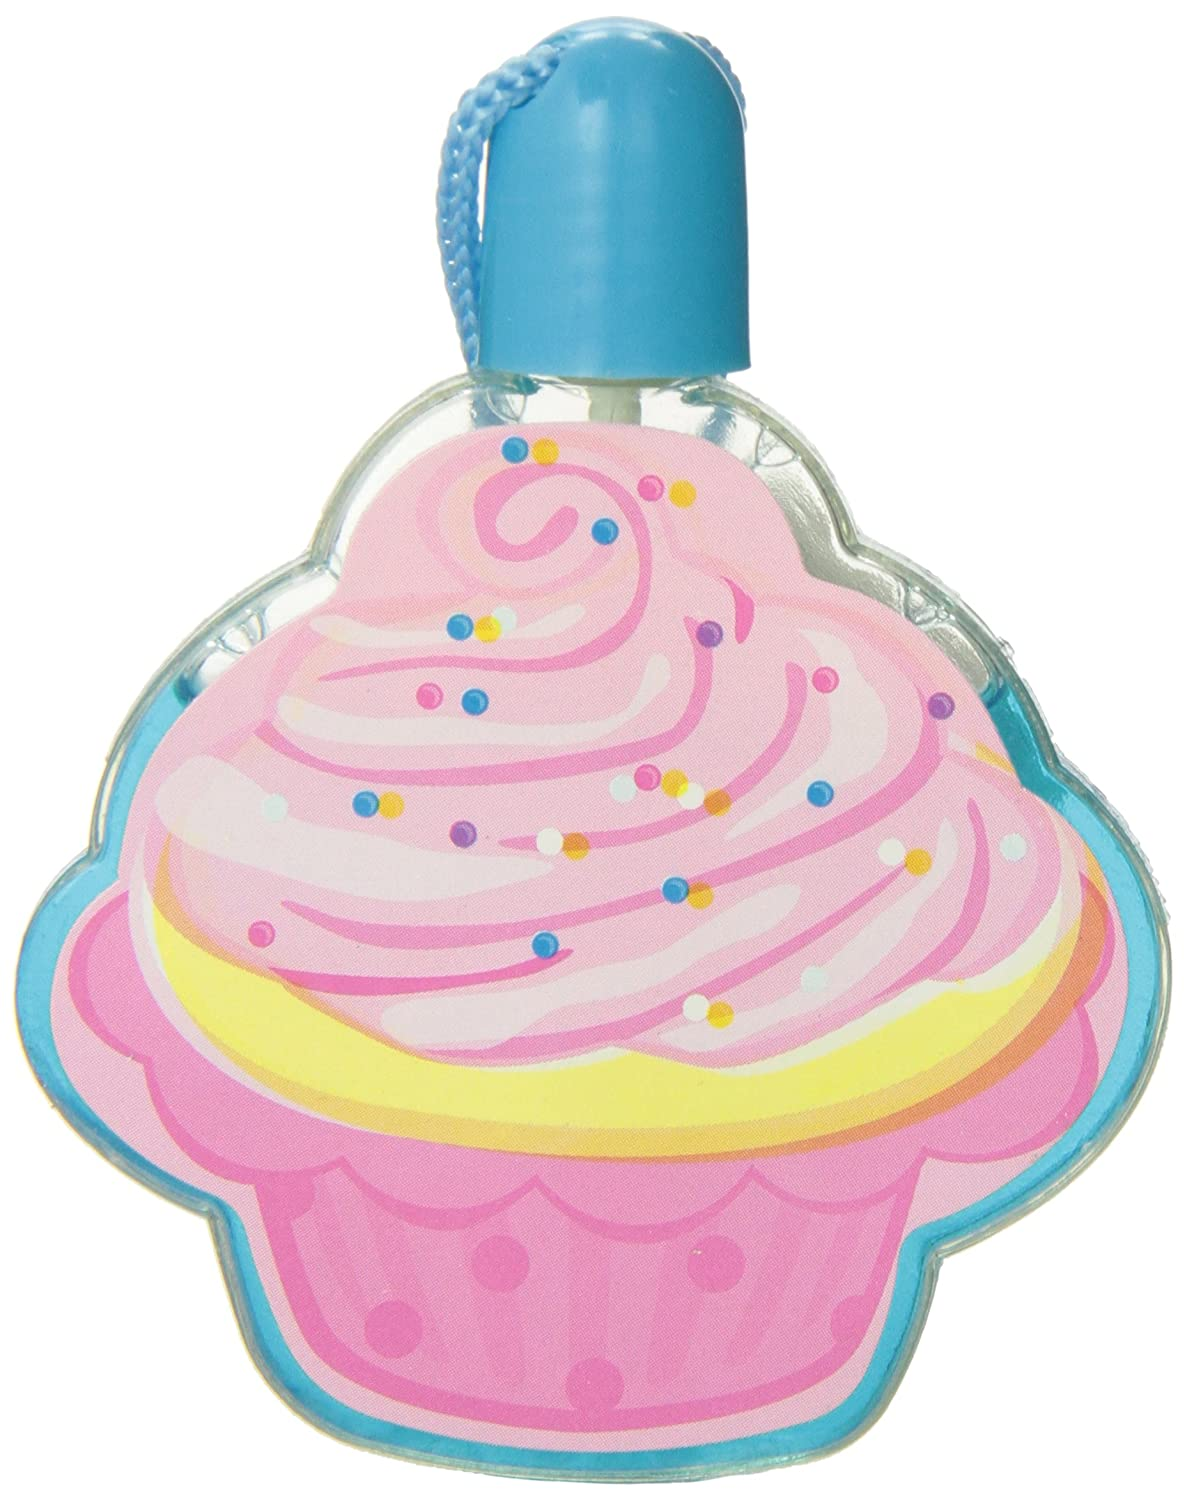 Rhode Island Novelty Cupcake Bubble Necklaces 12 Pack